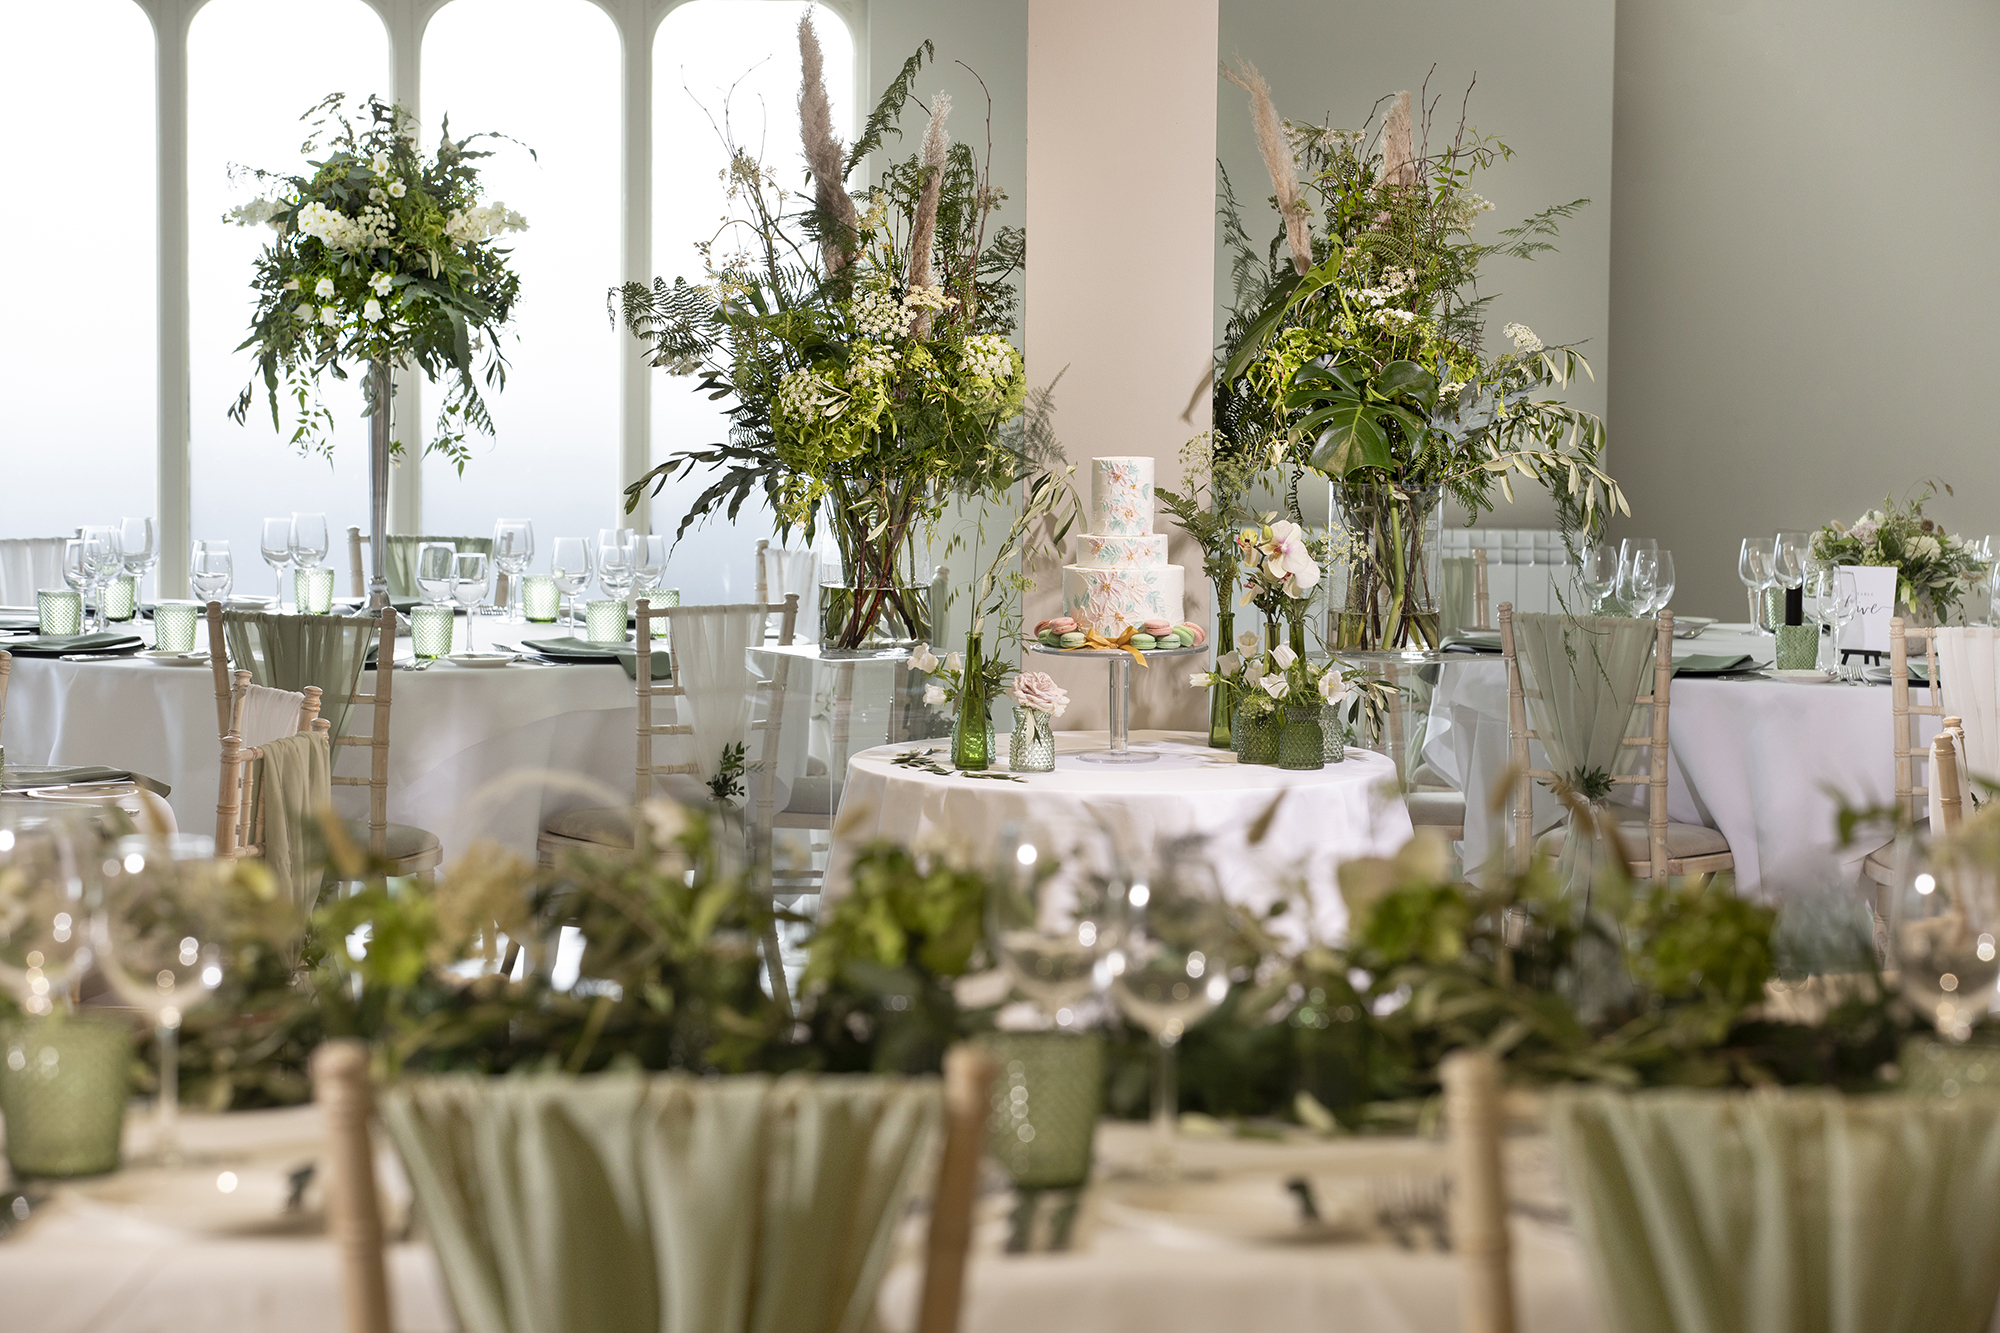 Stunning laid tables with flowers ready for the wedding breakfast, in the main function room at All Saints Hotel